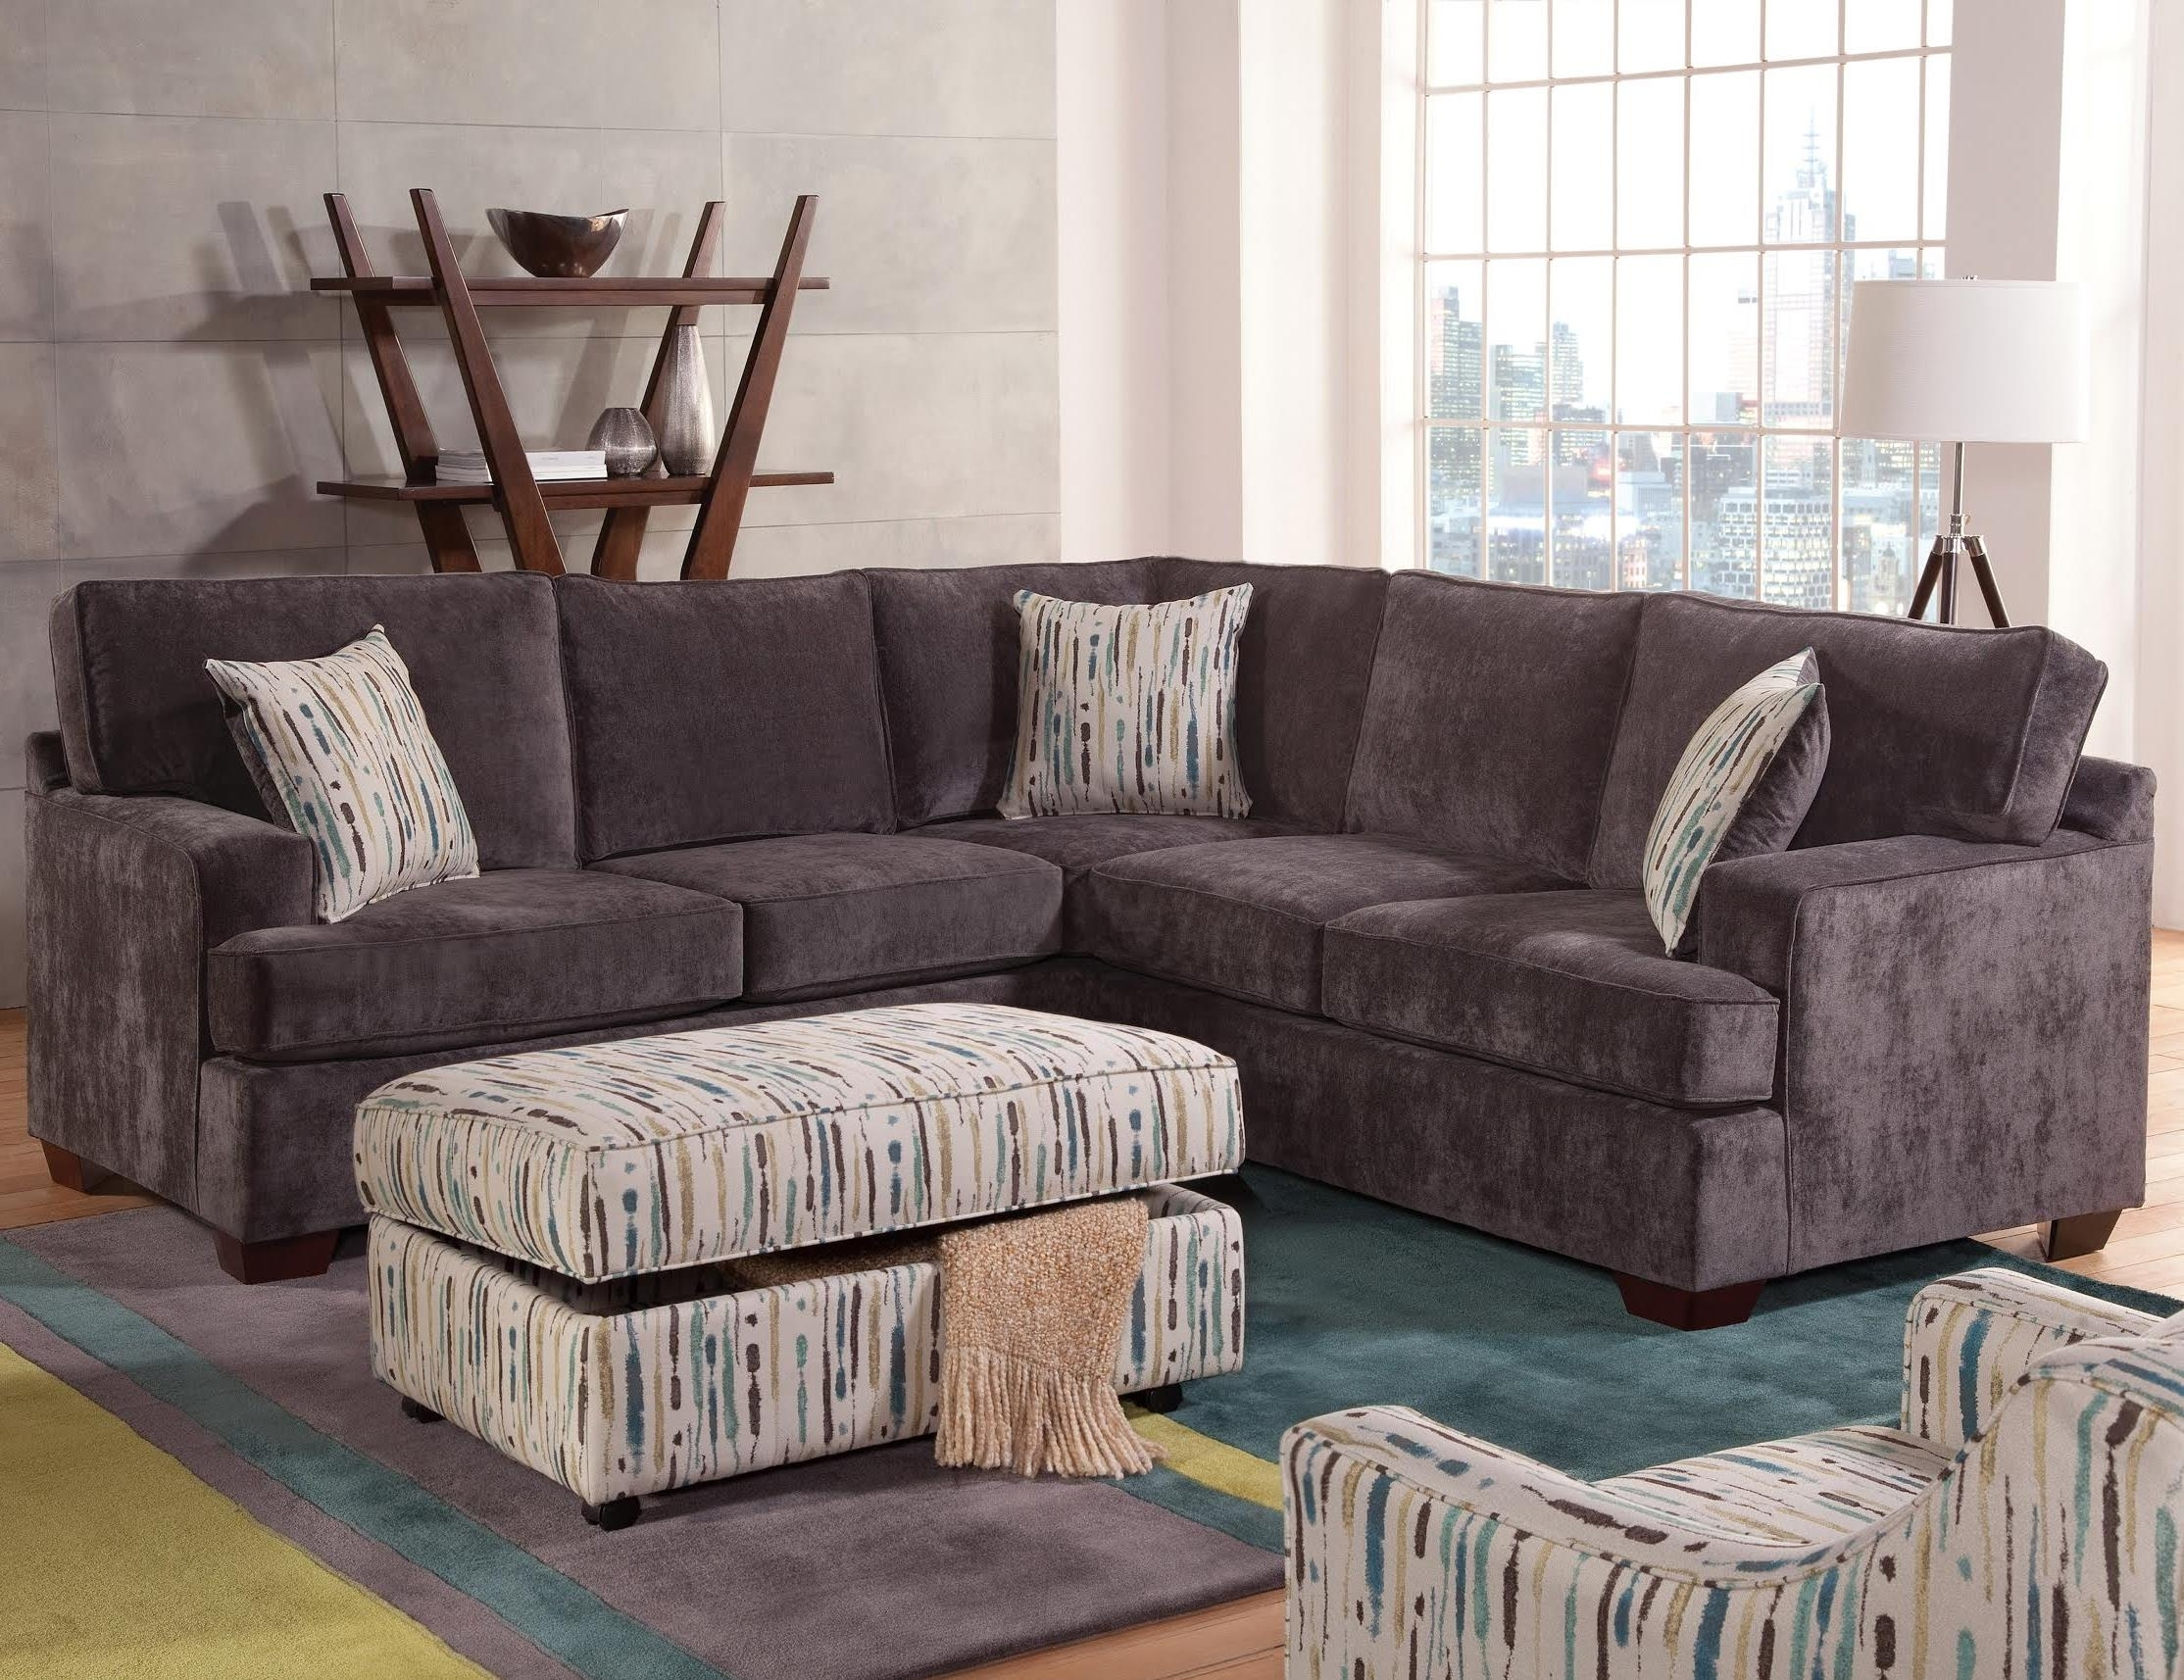 Furniture : Sectional Sofa Vancouver Bc Sectional Sofa Manufacturers With Vancouver Bc Sectional Sofas (View 10 of 10)